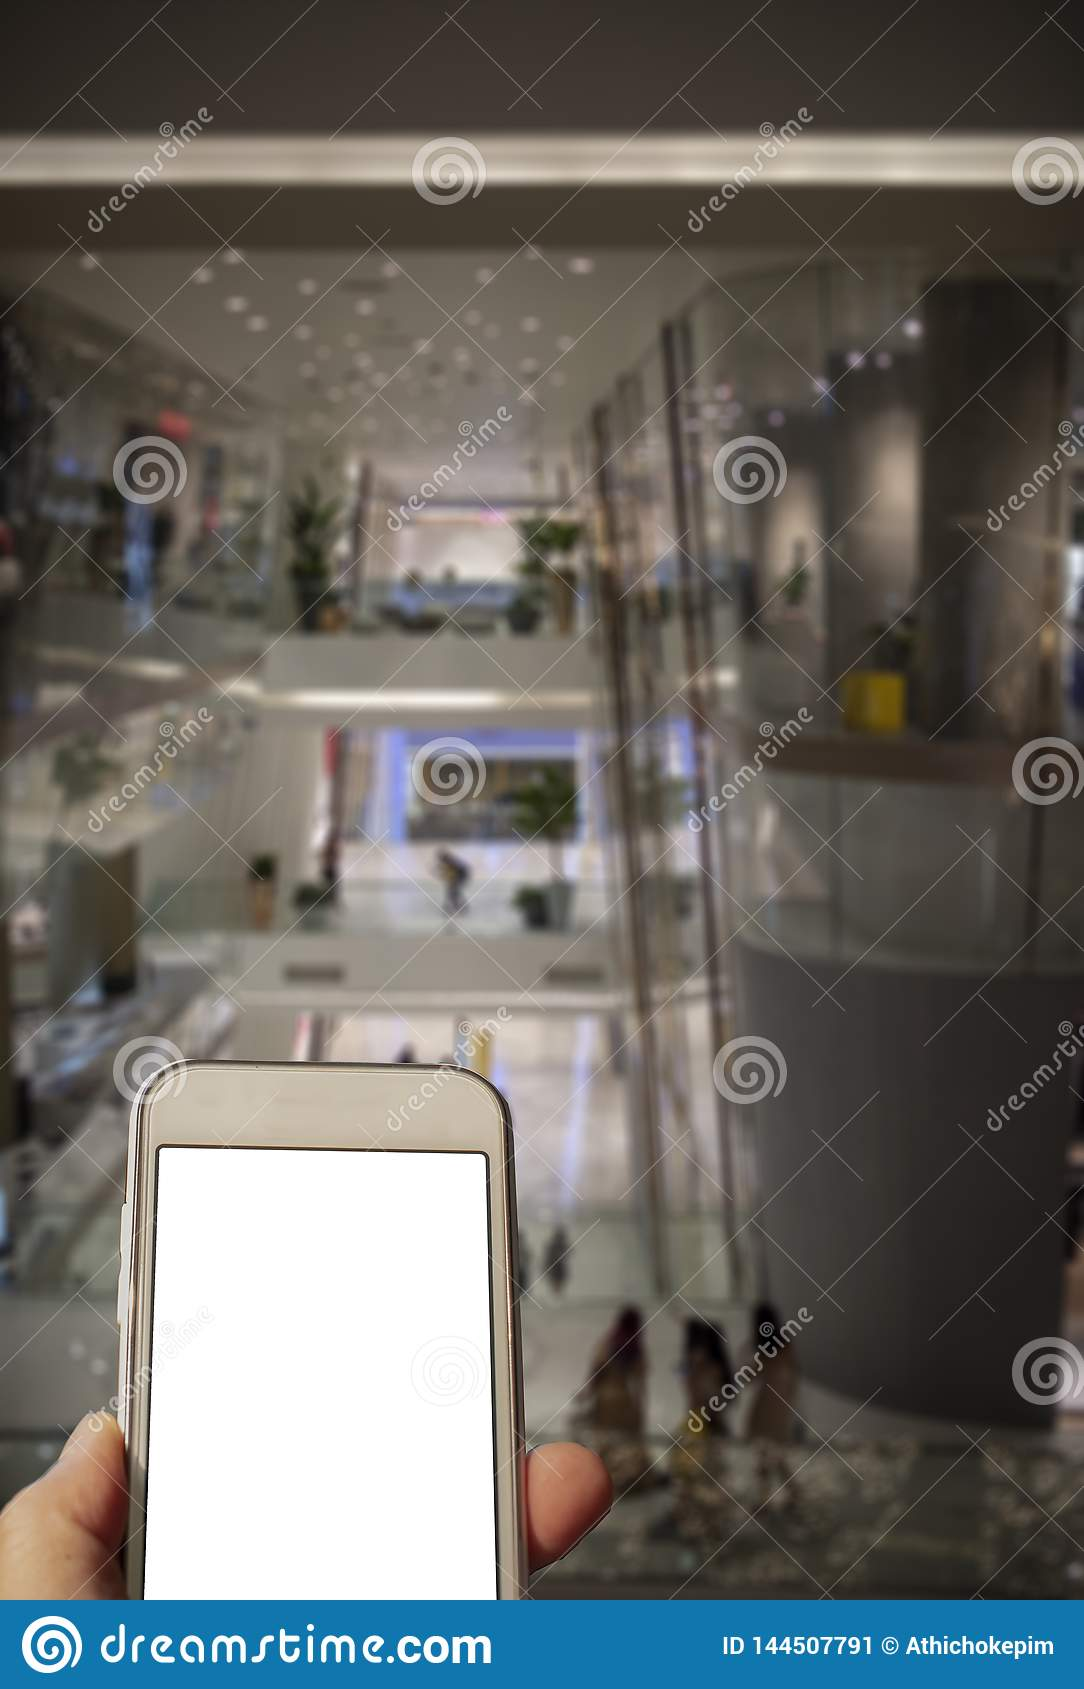 Checking a mobile phone while shopping.